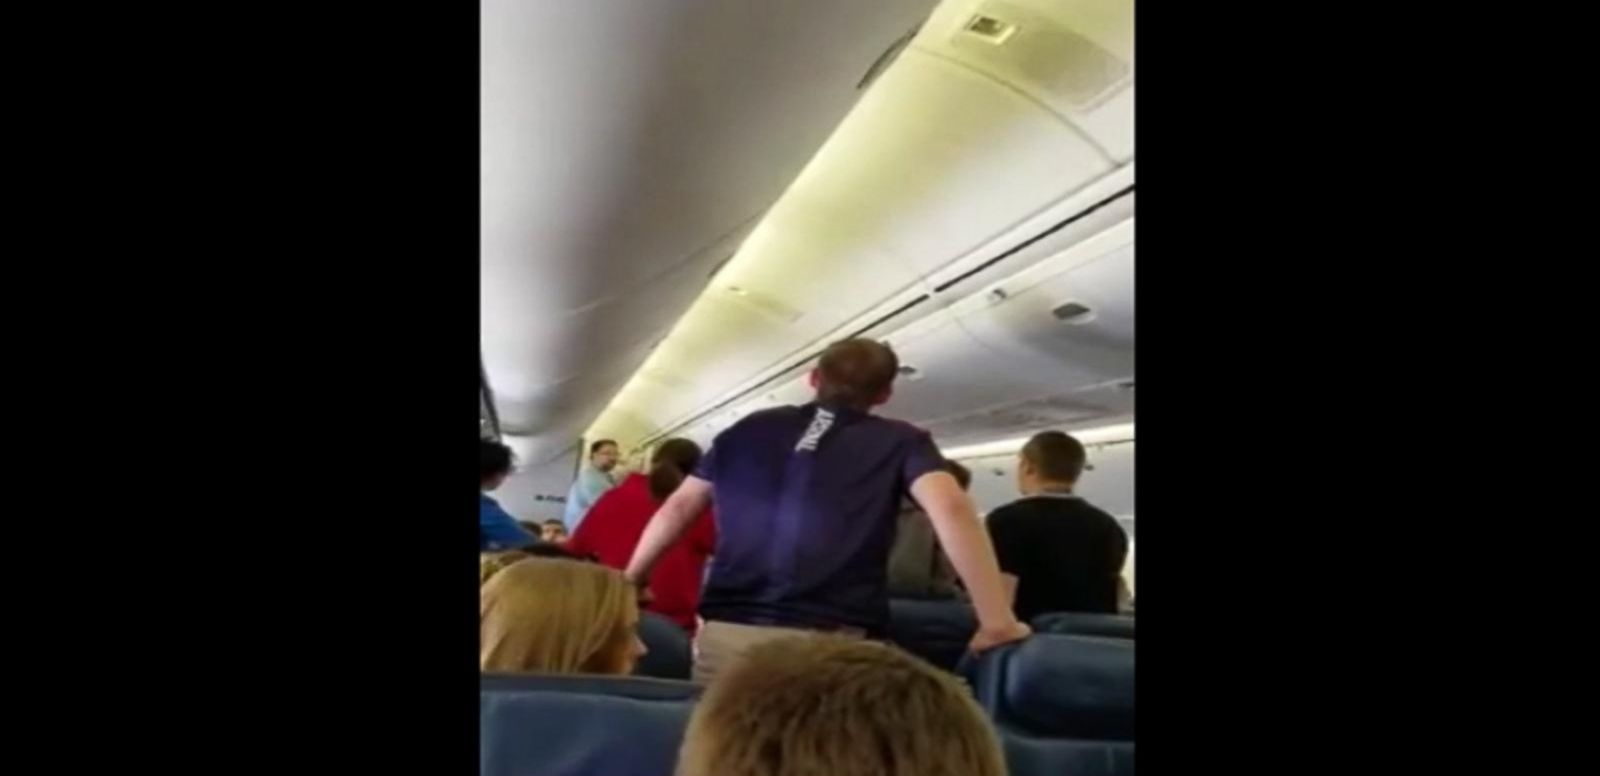 VIDEO: Students Offer Impromptu Serenade as Army Private Leaves Plane